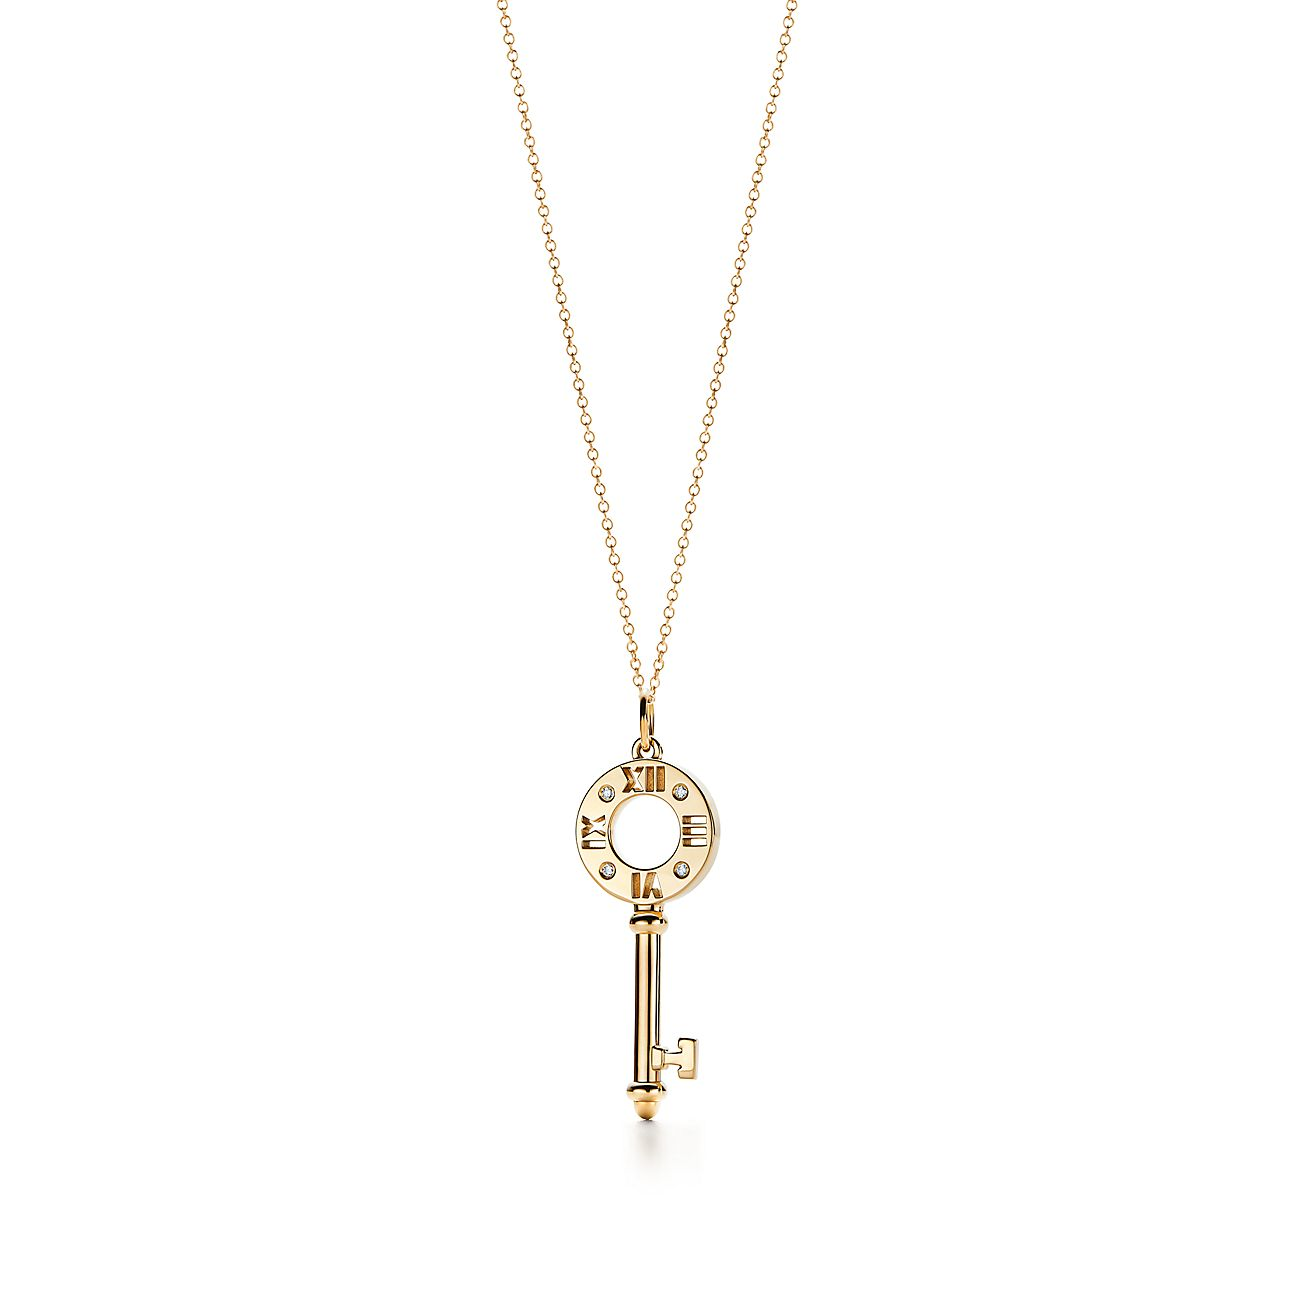 Atlas pierced pendant in 18k gold with diamonds, small Tiffany & Co.